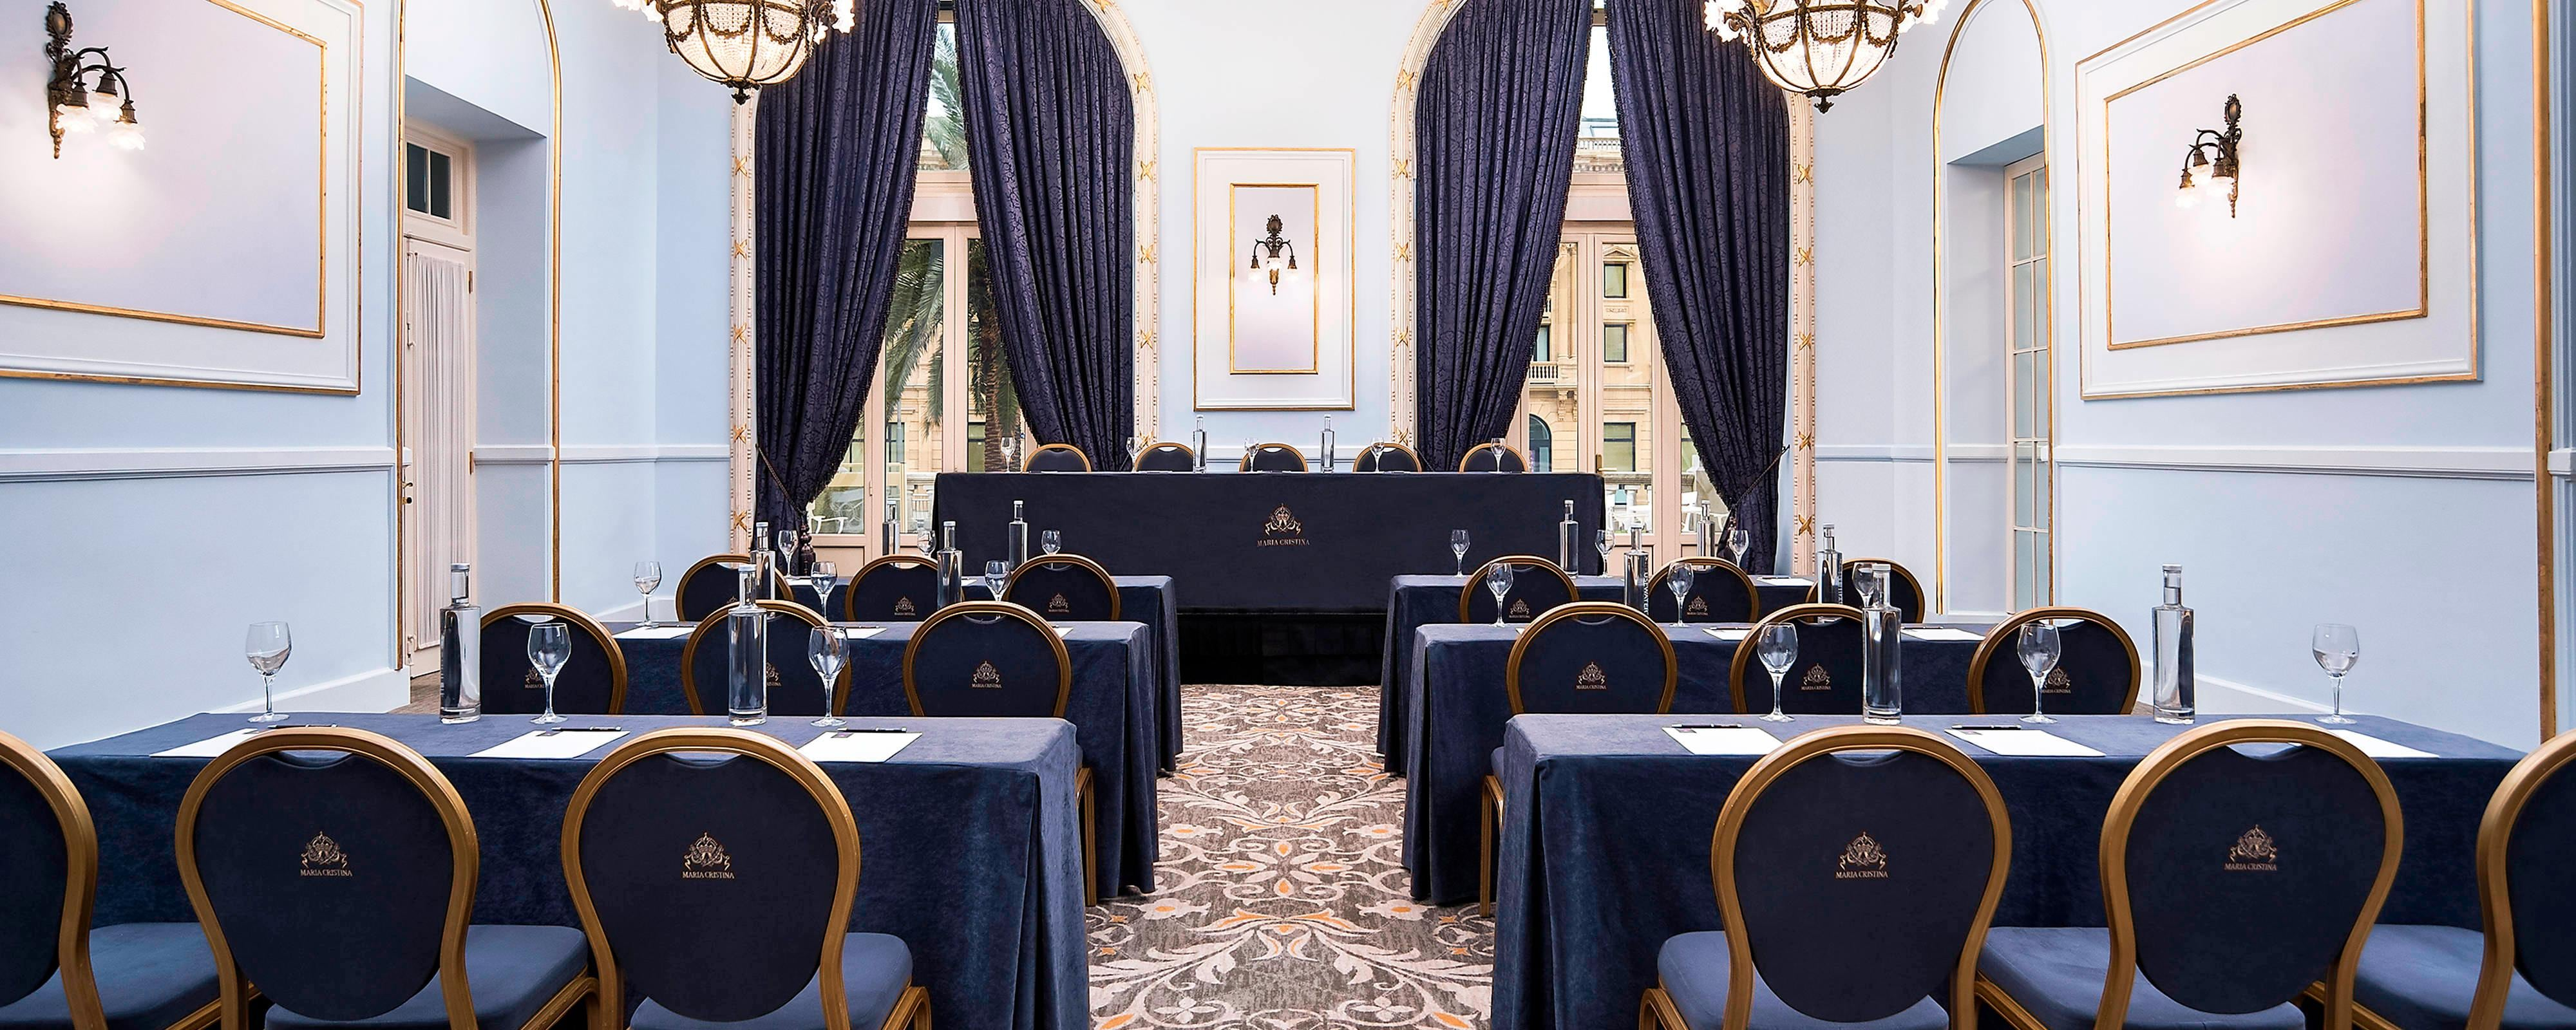 Meetings And Events At Hotel Maria Cristina A Luxury Collection Hotel